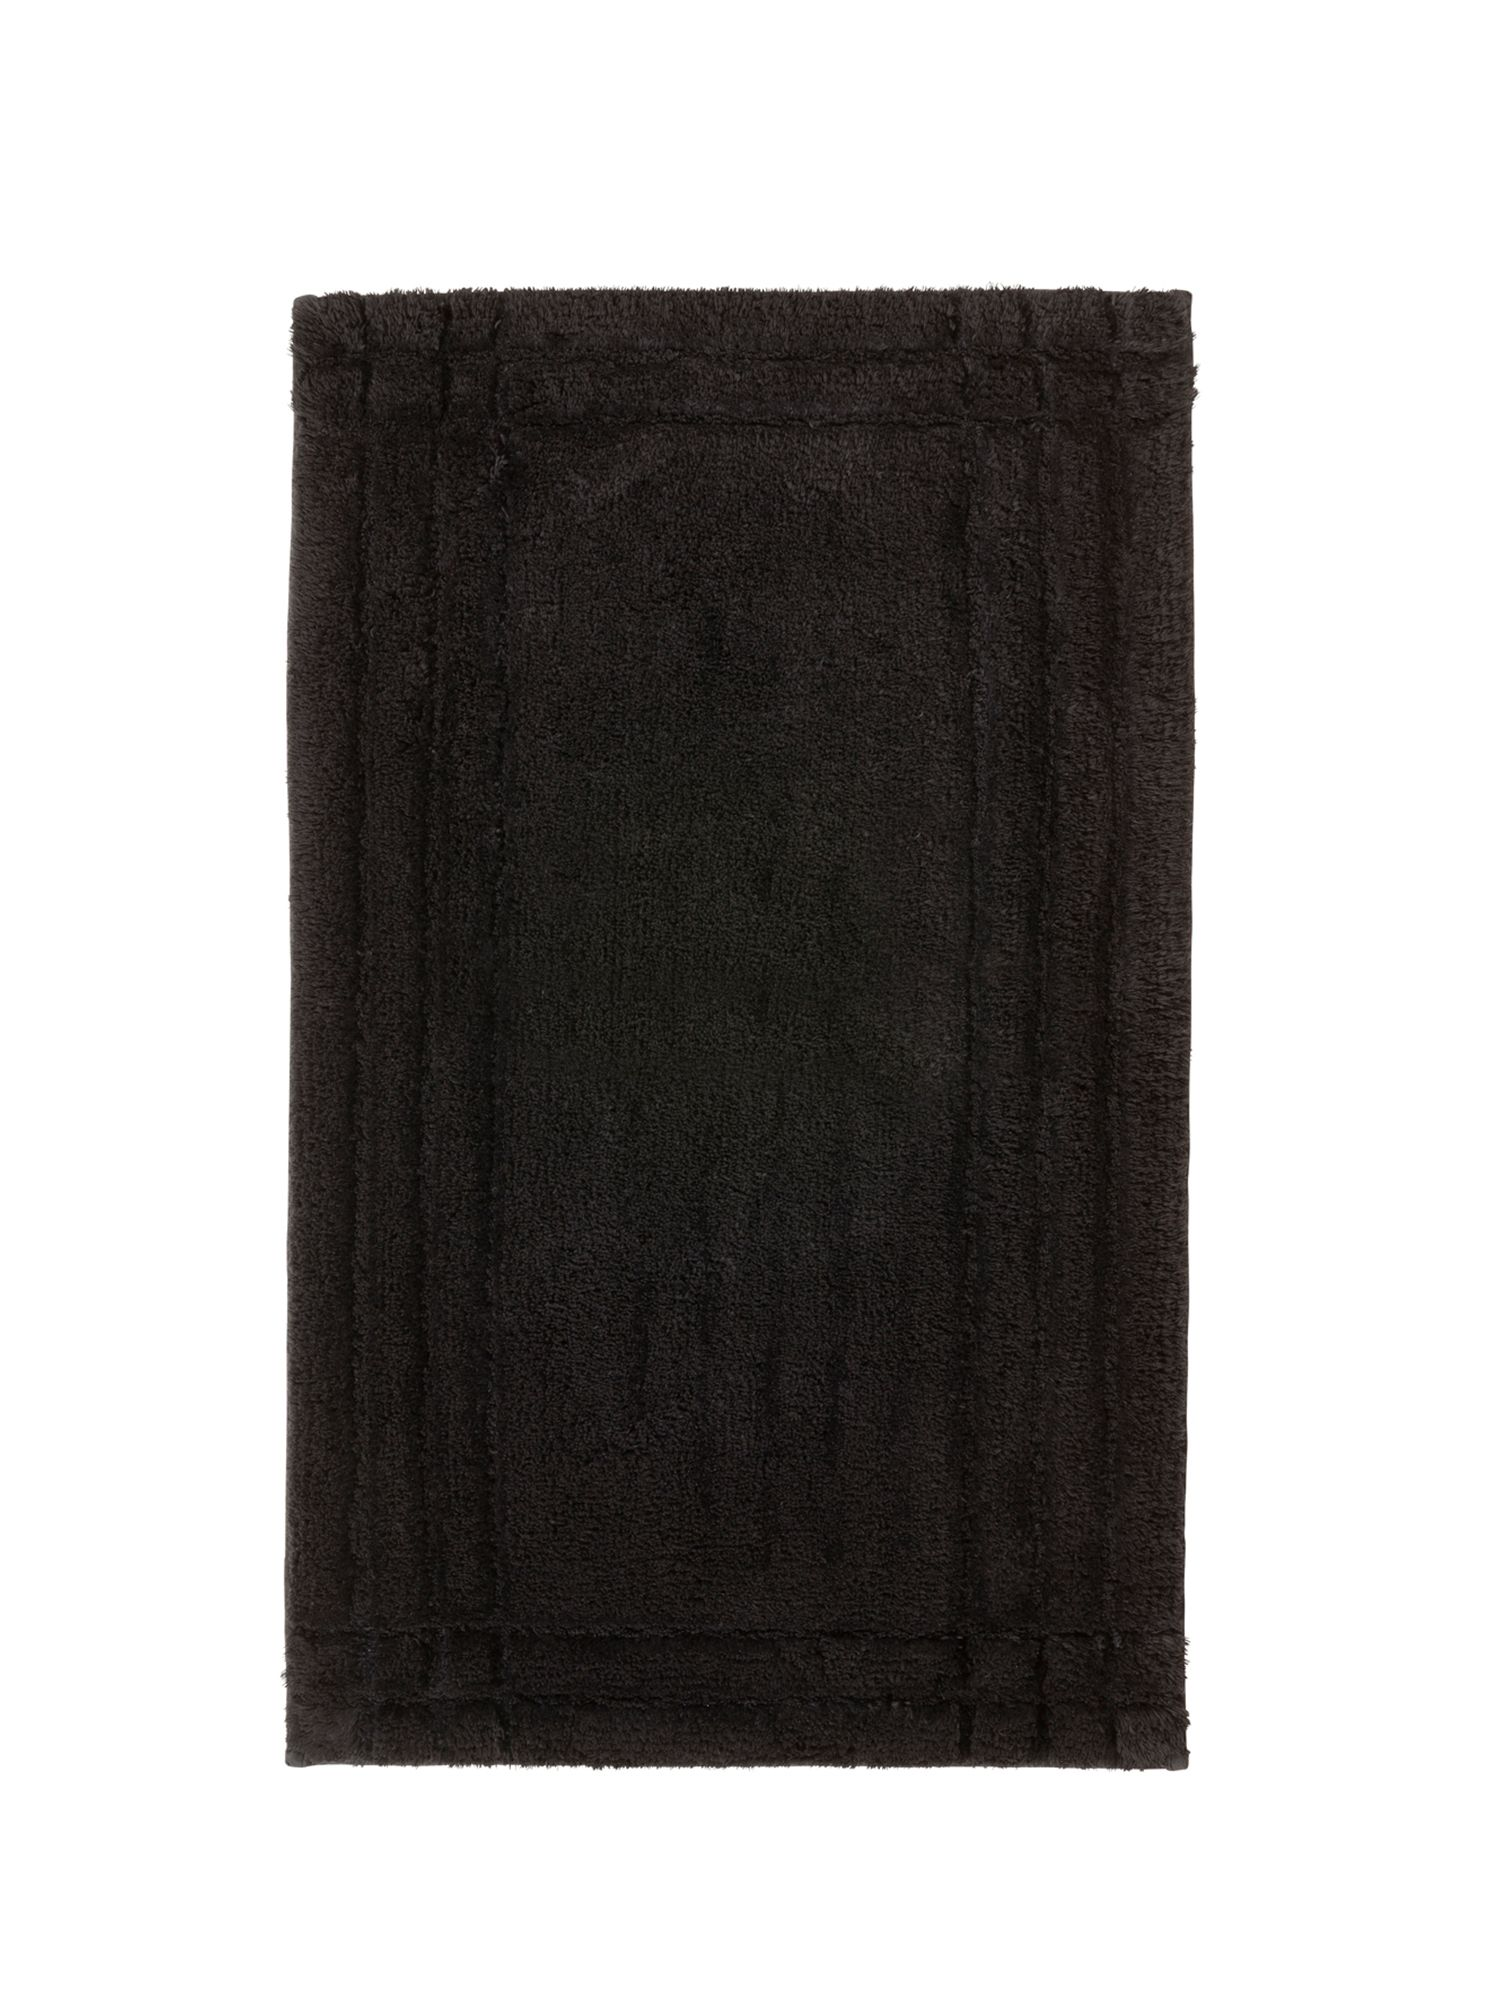 Black Bath Mat Range